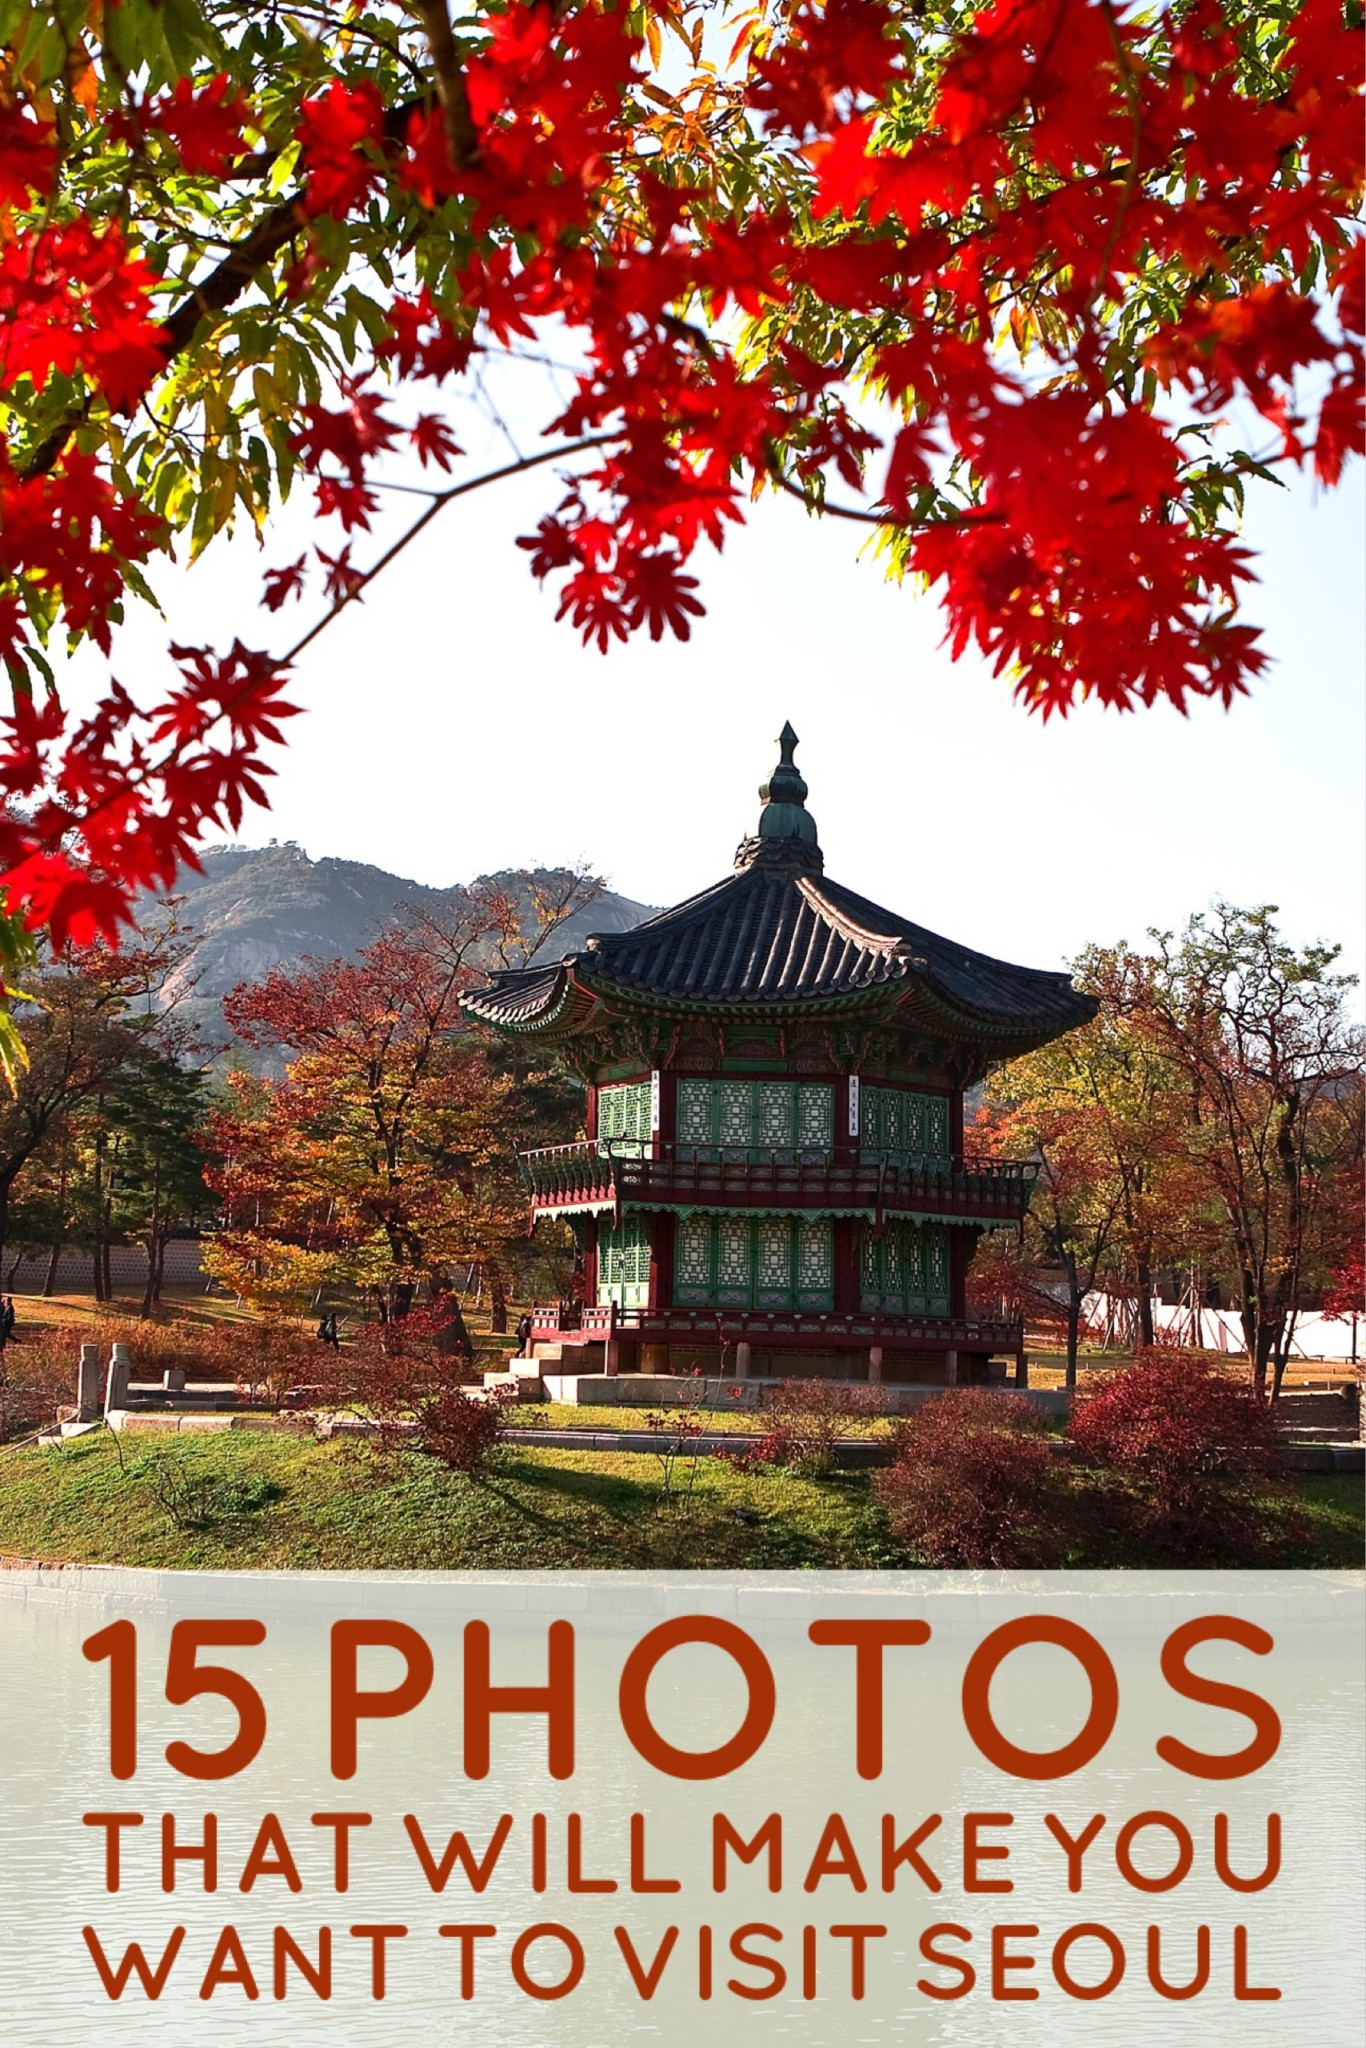 15 Photos That Will Make You Want to Visit Seoul